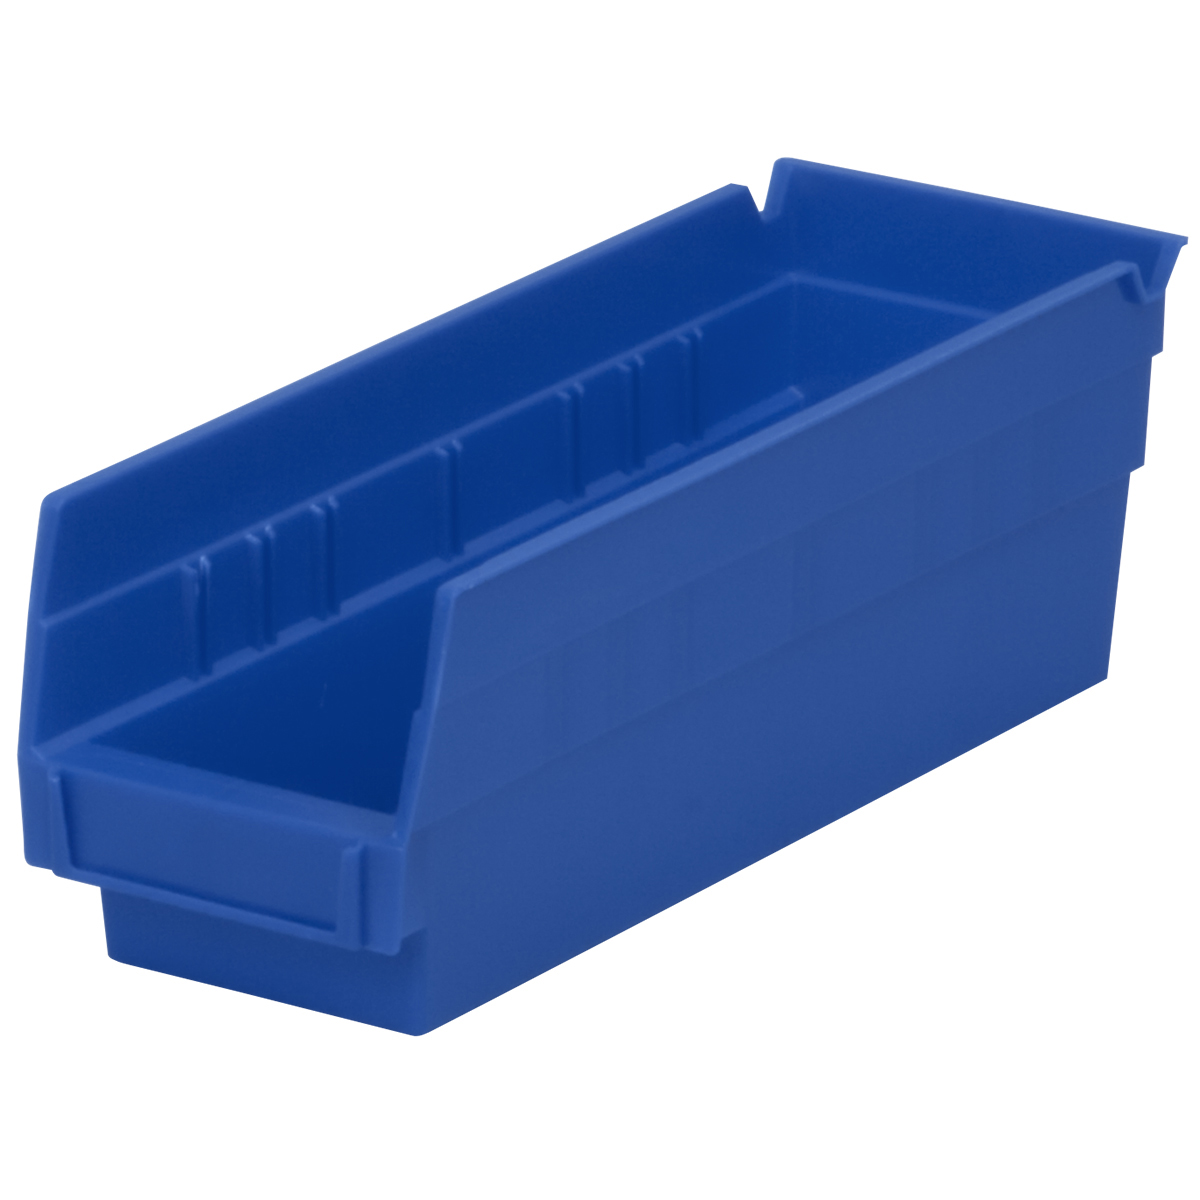 Shelf Bin 11-5/8 x 4-1/8 x 4, Blue (30120BLUE).  This item sold in carton quantities of 24.